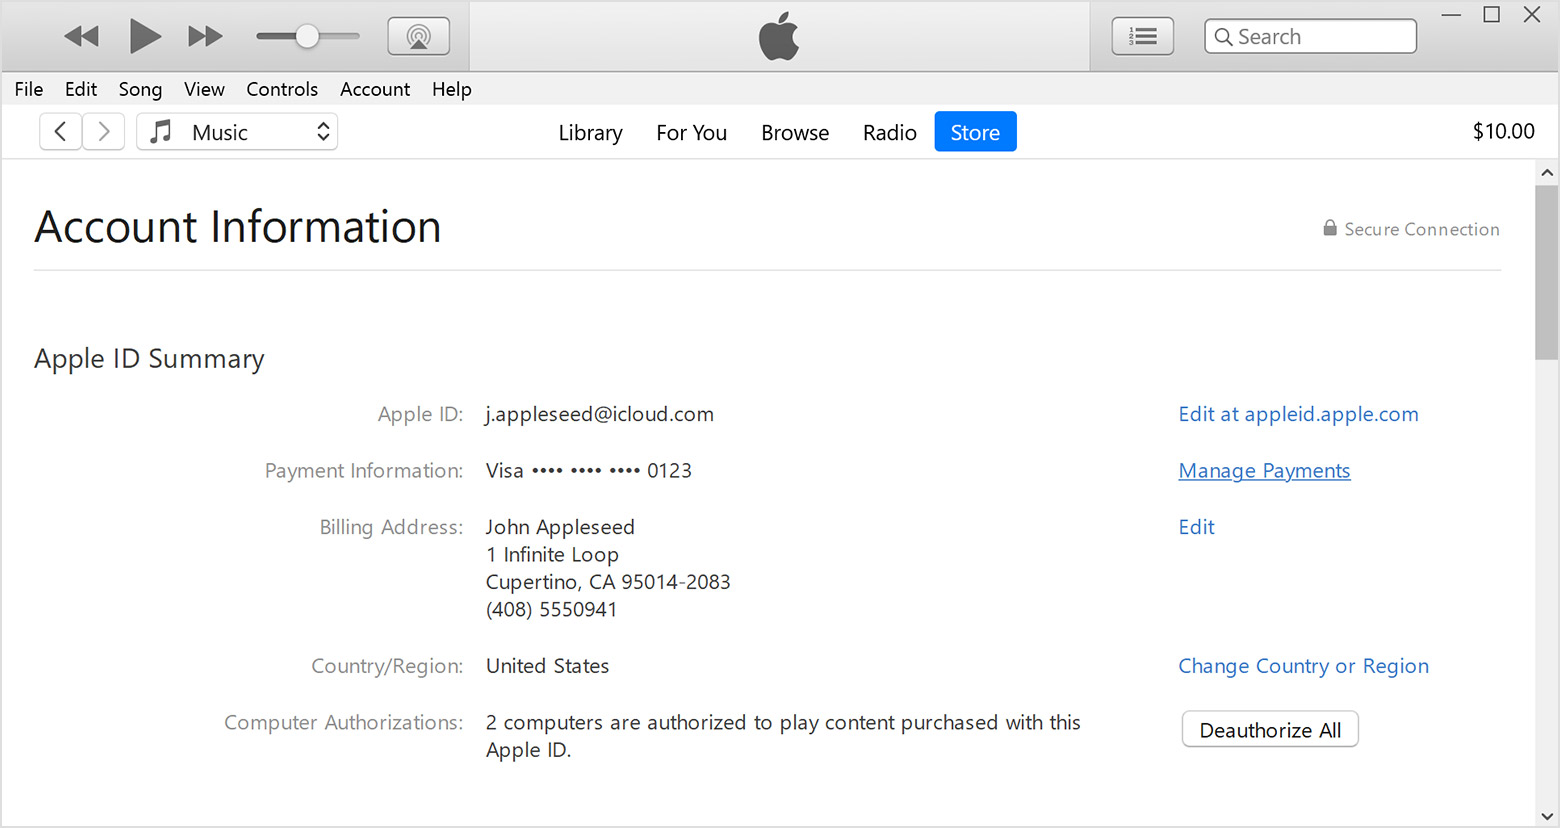 Account Information page in iTunes showing payment information, billing address, and other information related to Apple ID.